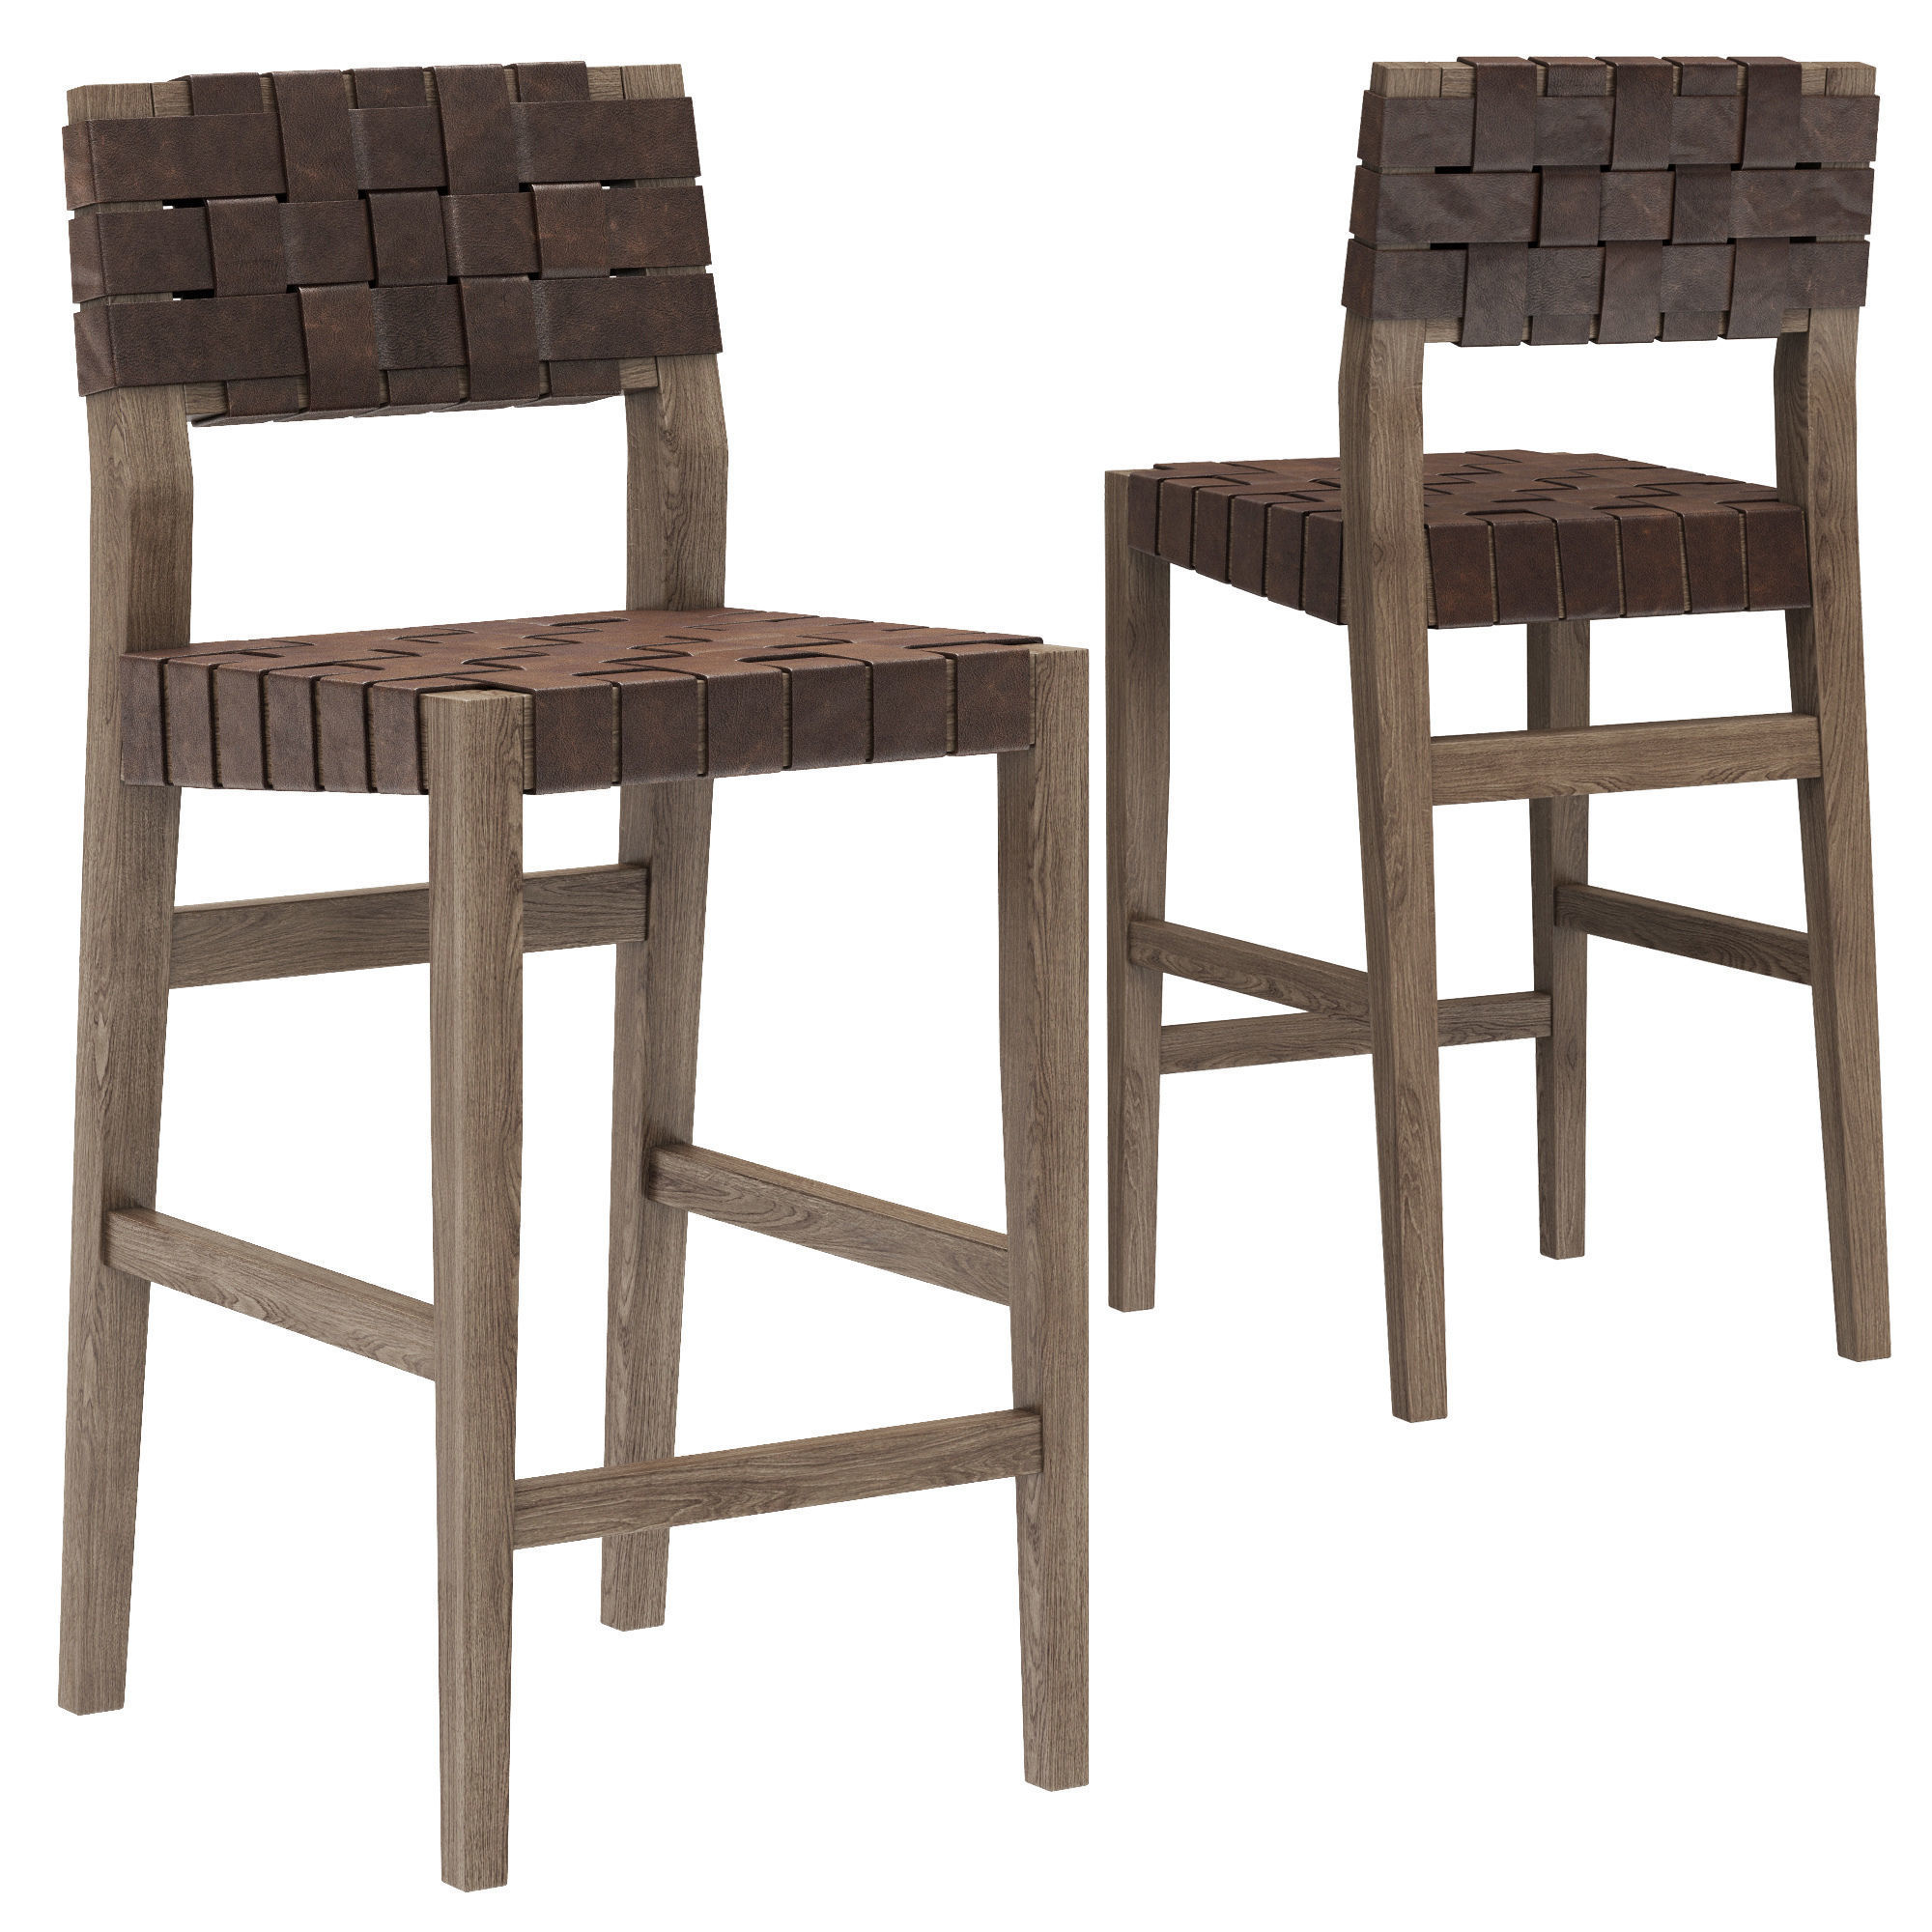 Restoration Hardware Vero Leather Stool